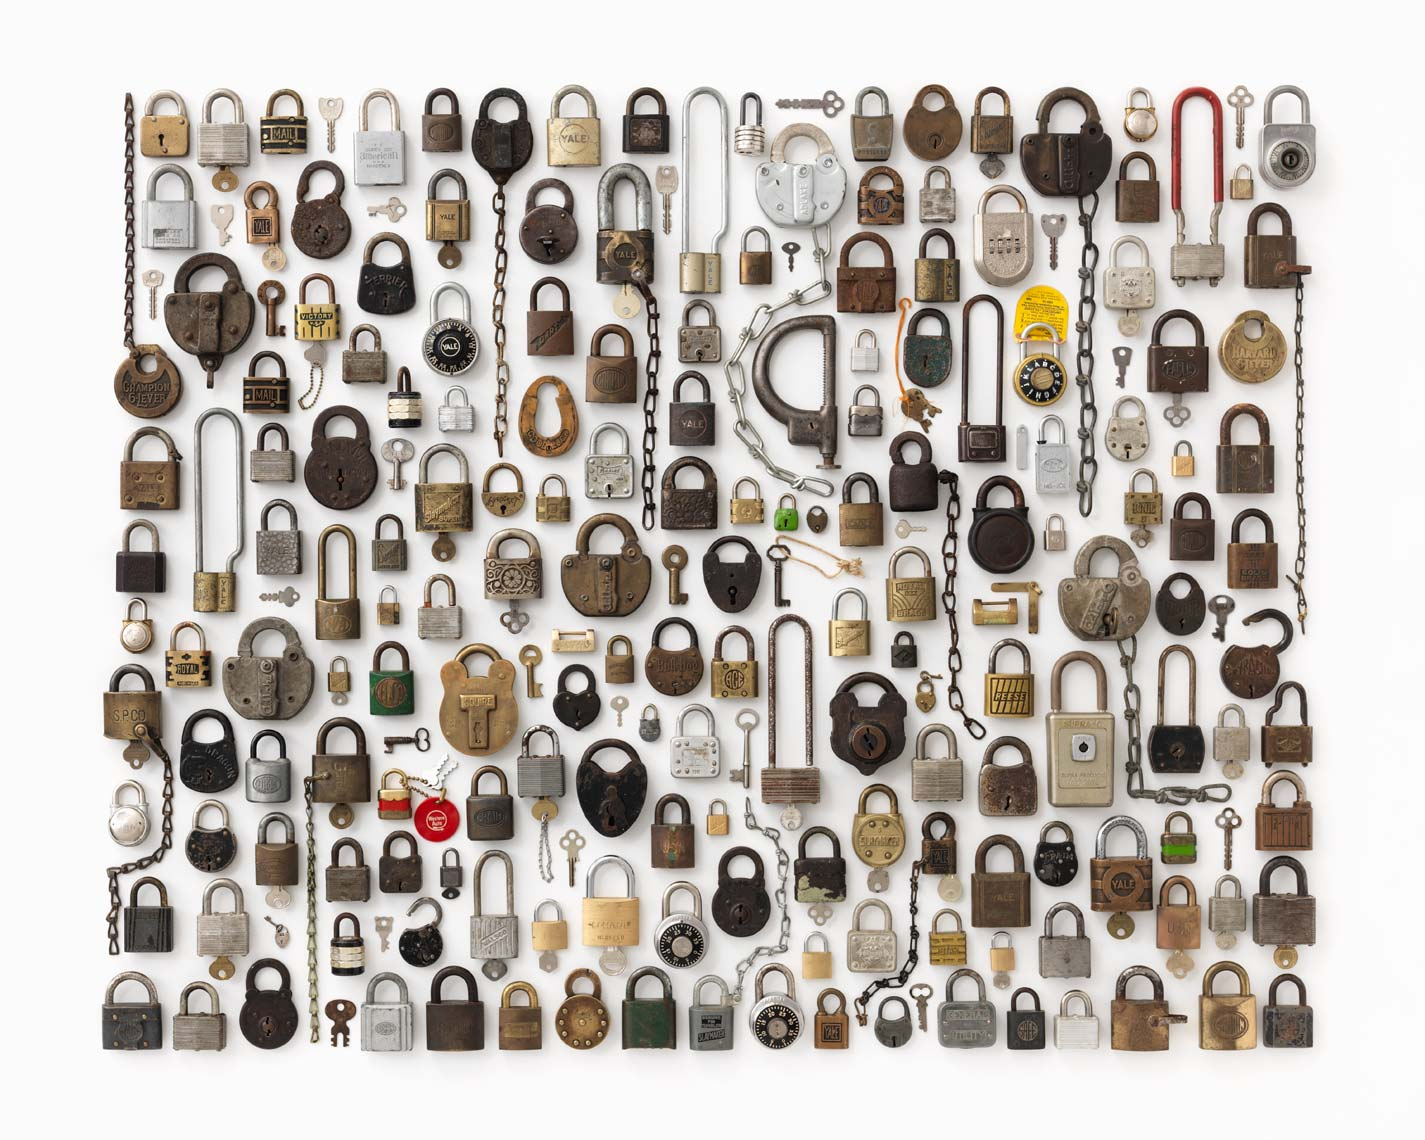 giant lock collection organized neatly